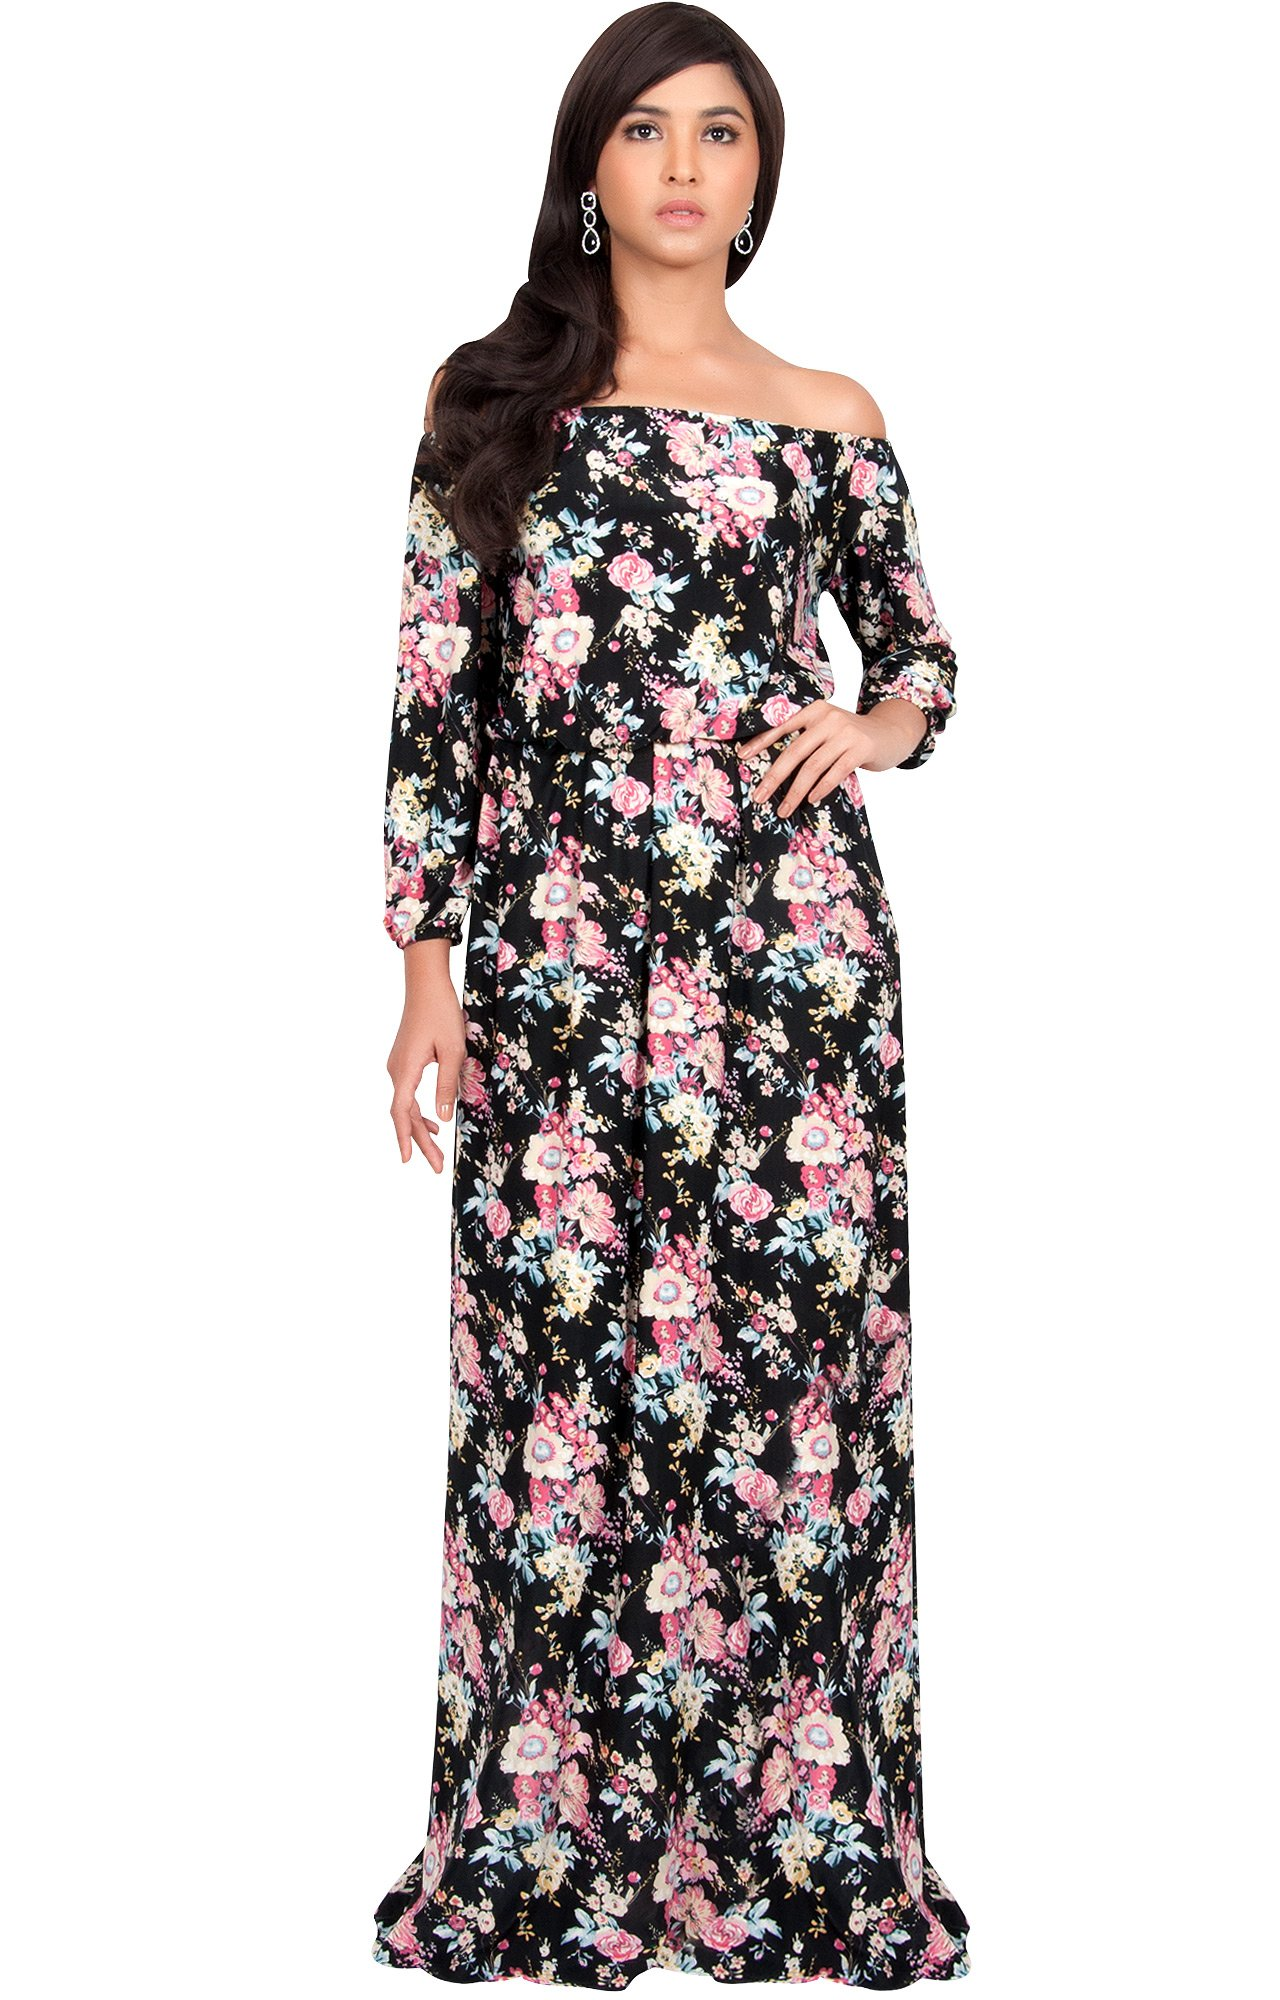 KOH KOH Plus Size Women Long Off Shoulder Summer Floral ...